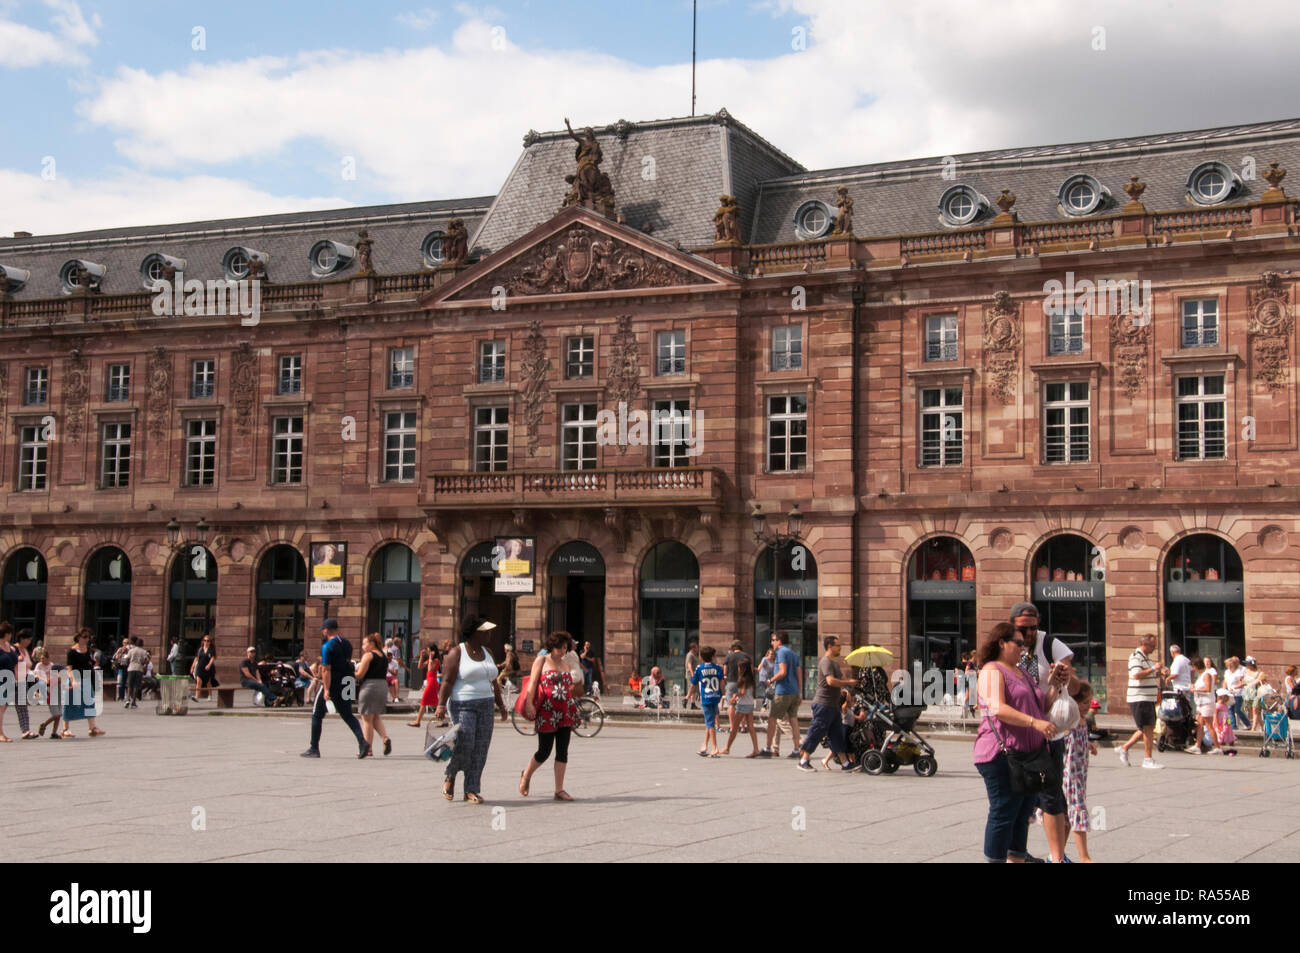 Les Boutiques shopping mall in Place Kleber, Strasbourg, Alsace, France - Stock Image